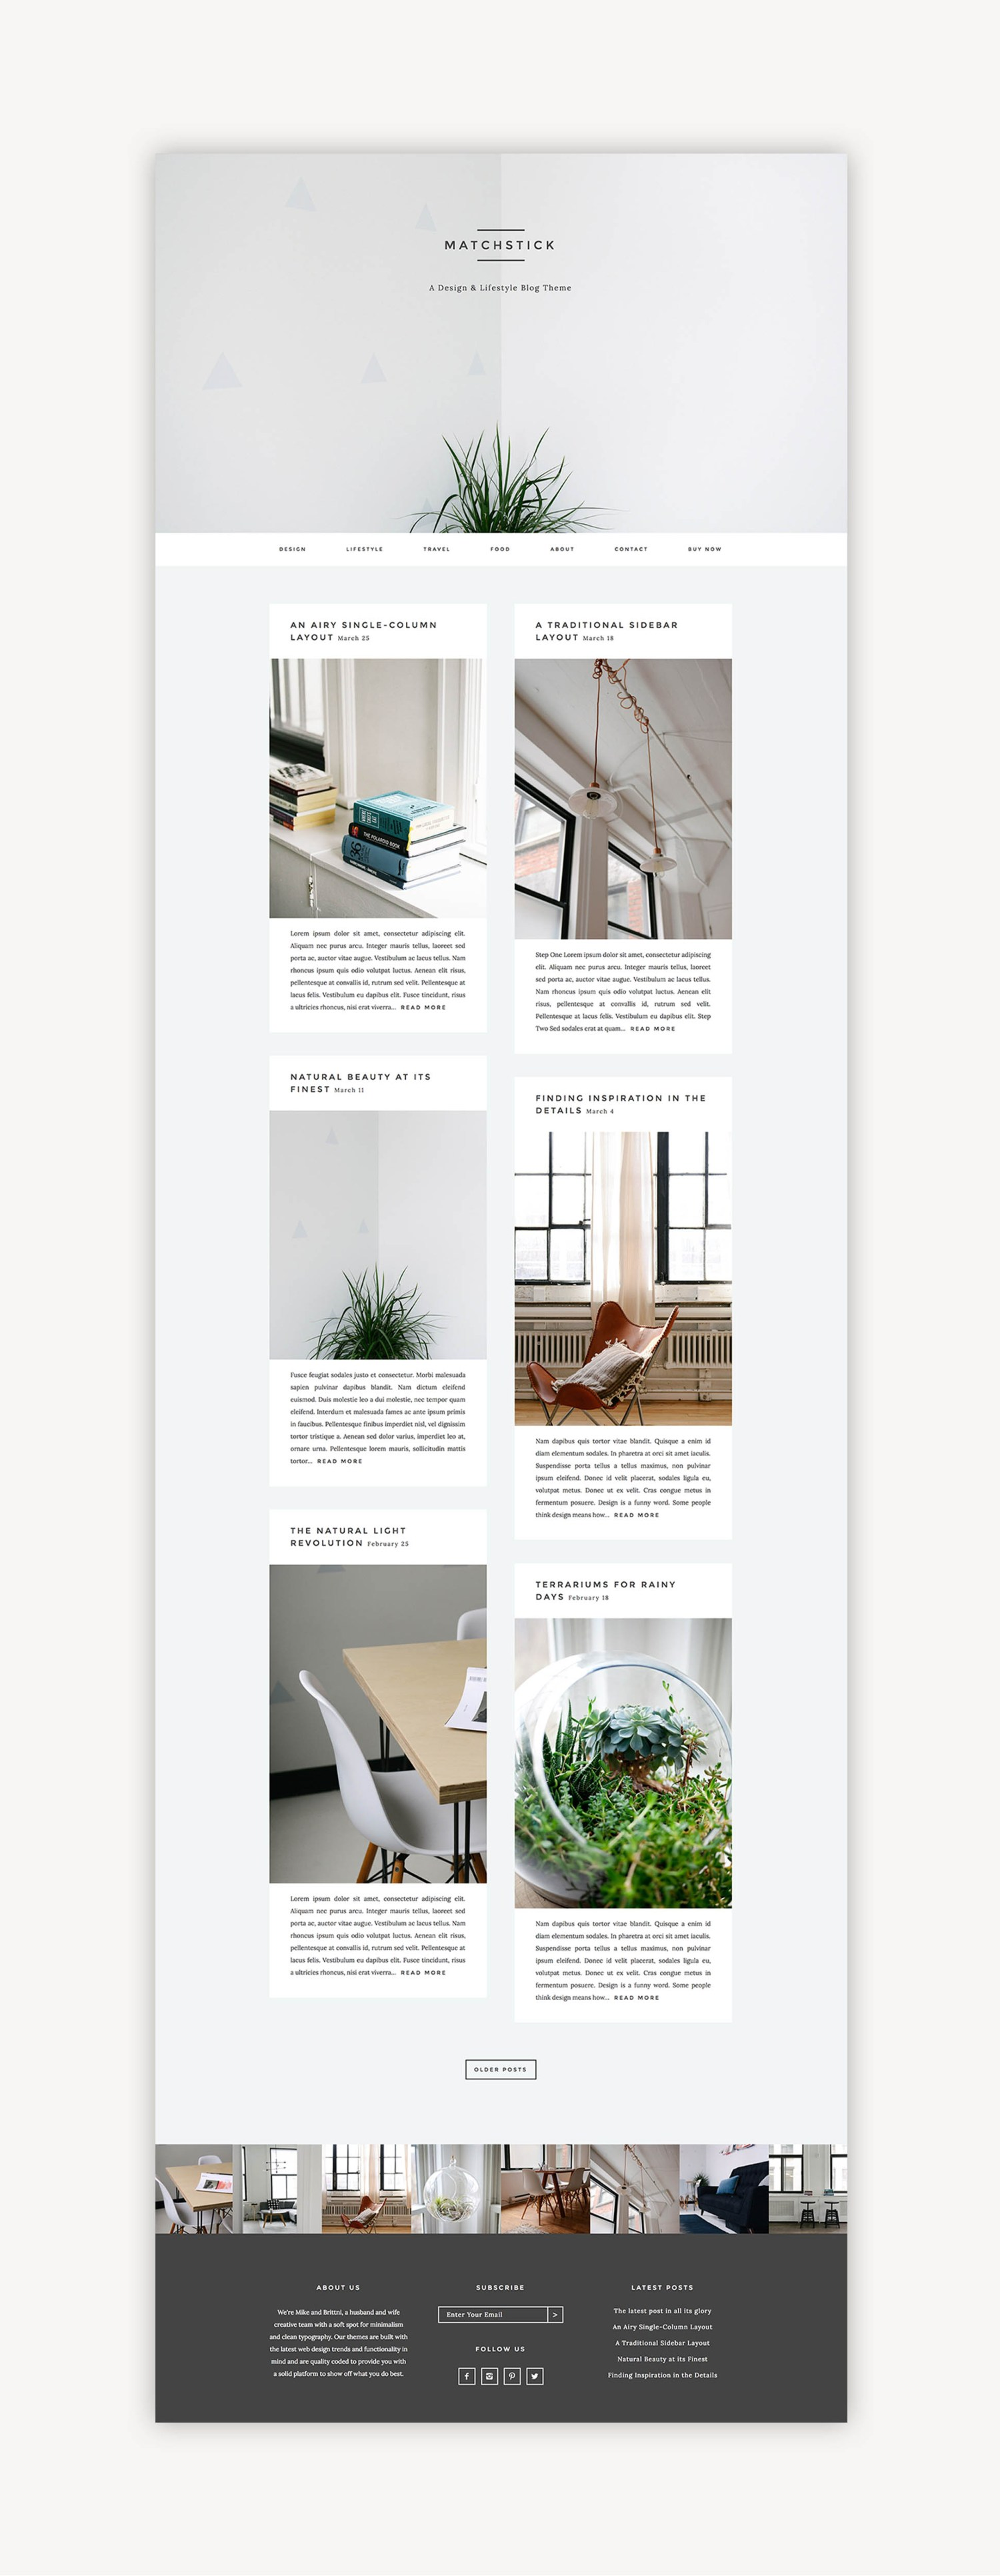 Matchstick-WordPress-Themes-Station-Seven